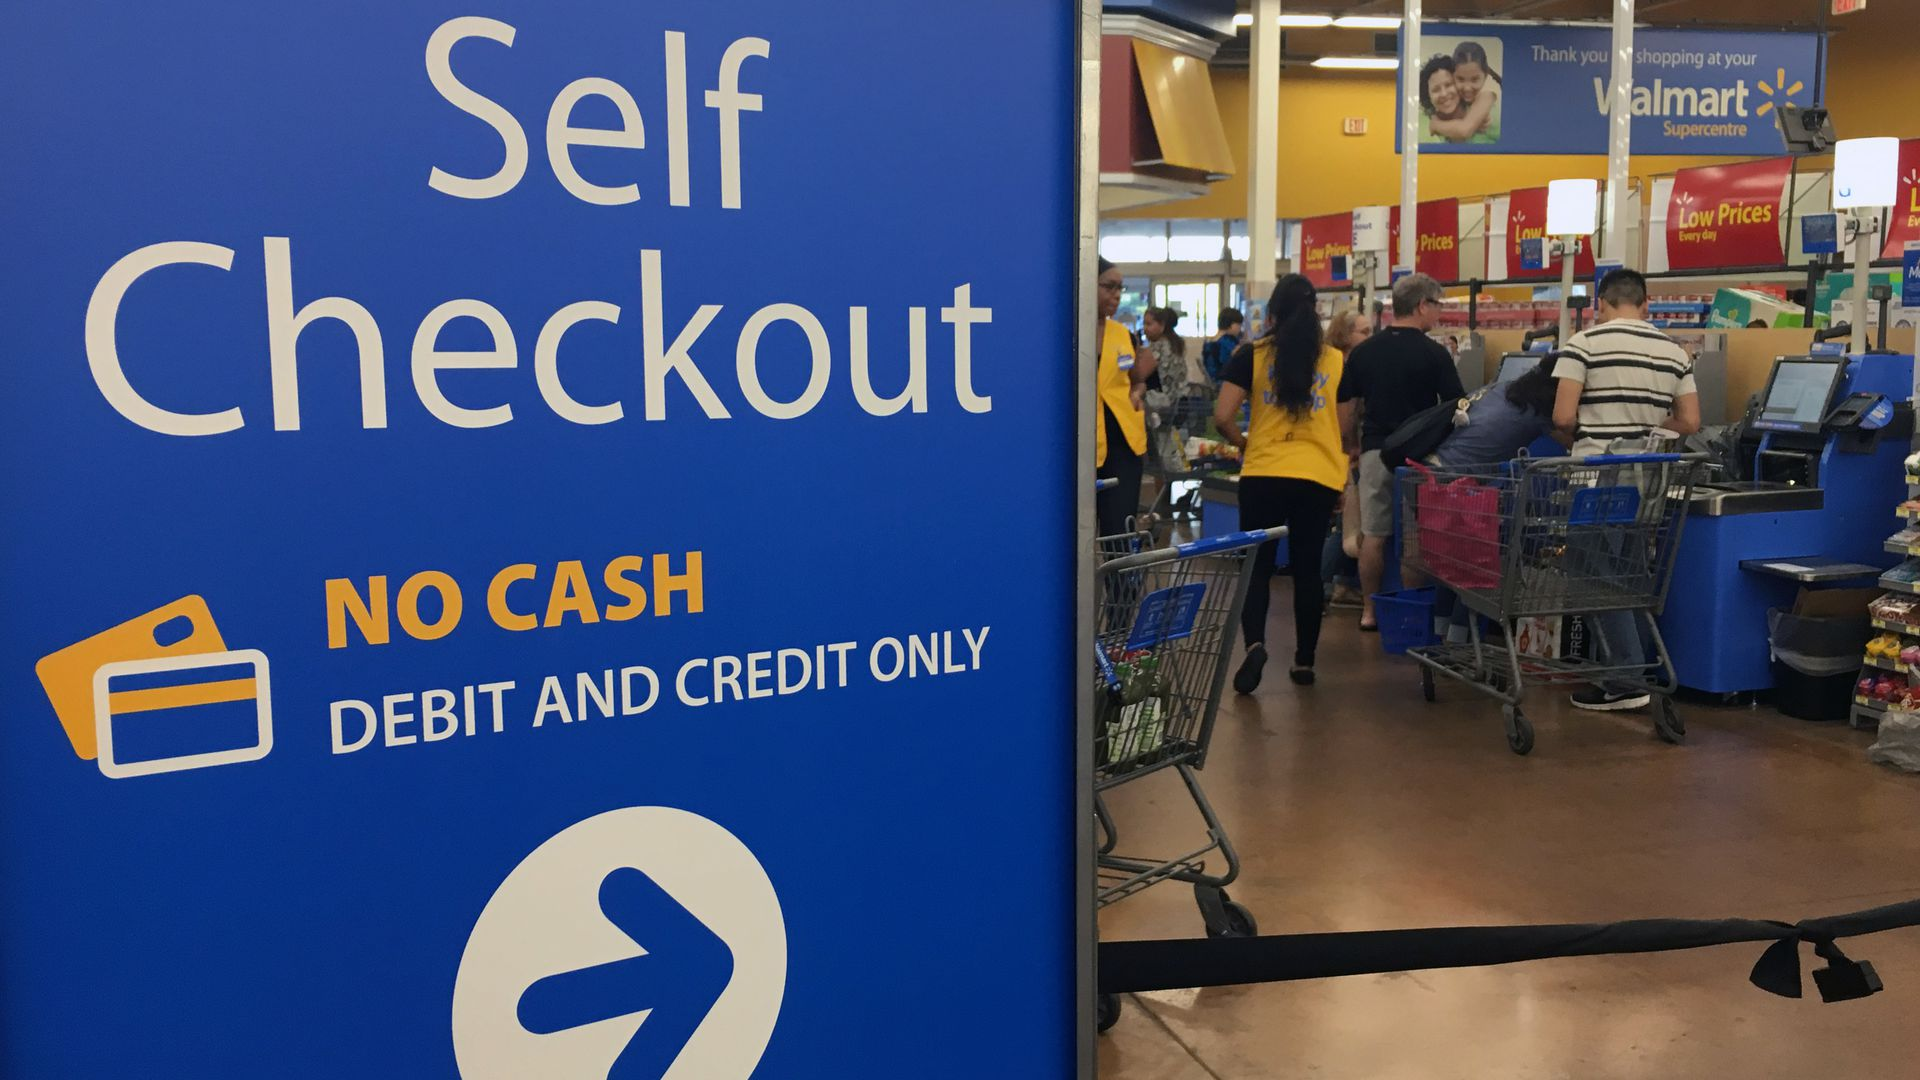 A Walmart sign pointing toward self checkout